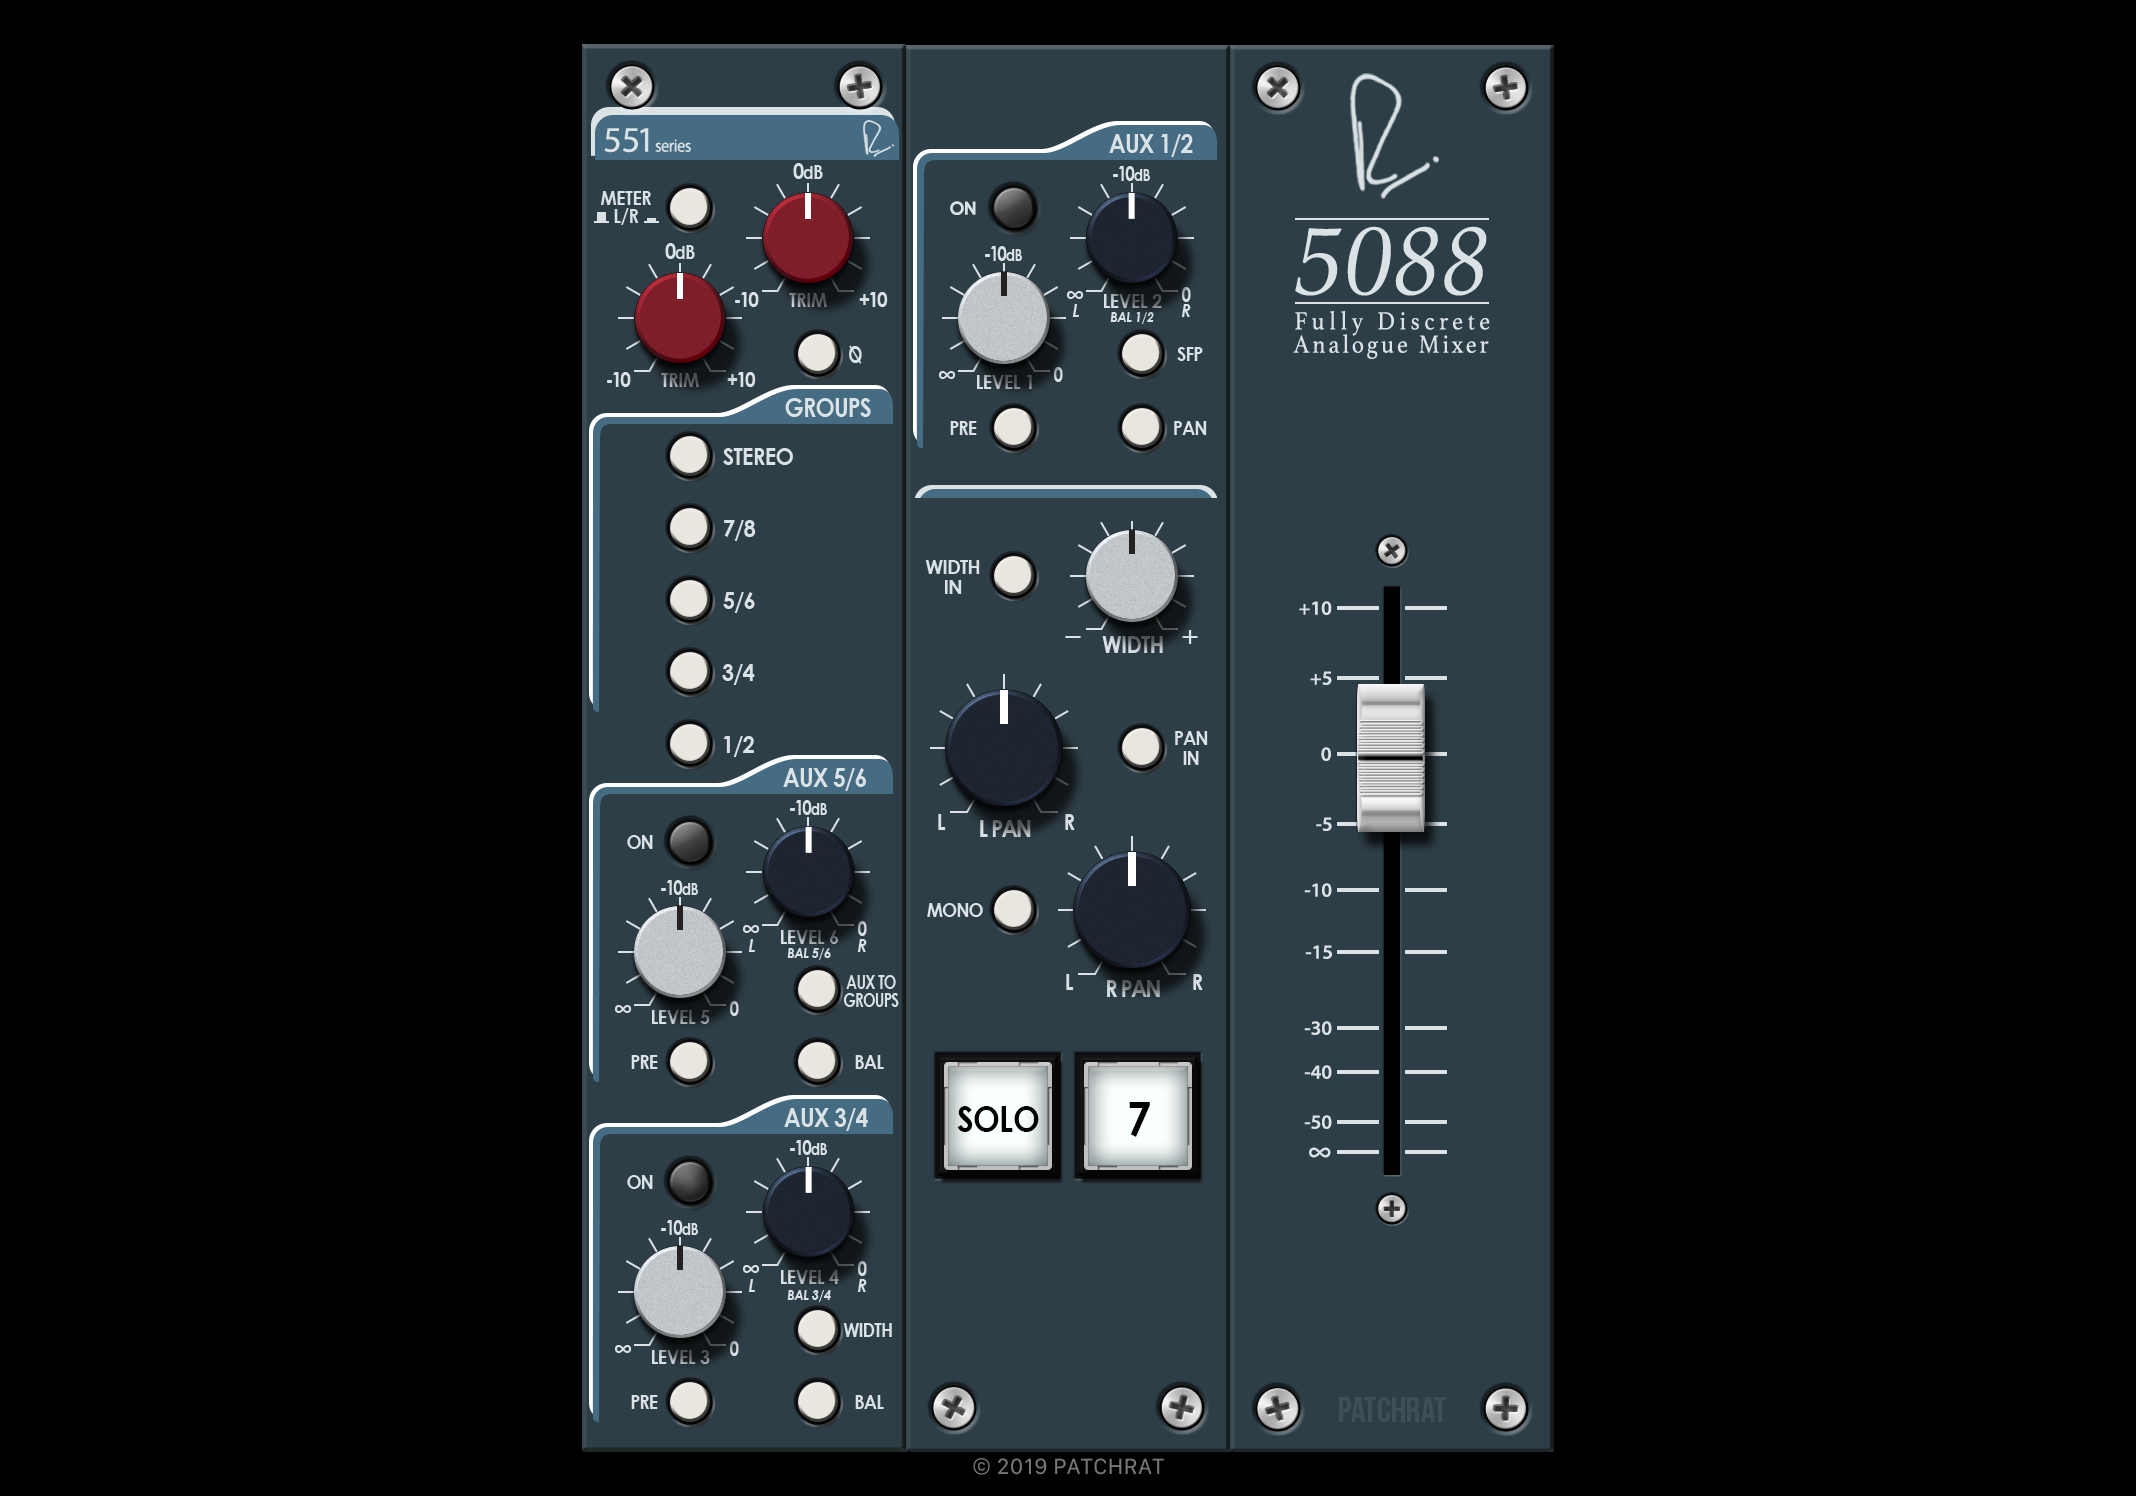 Rupert Neve Designs 5088 Stereo Input Channel recall module for the Patchrat app